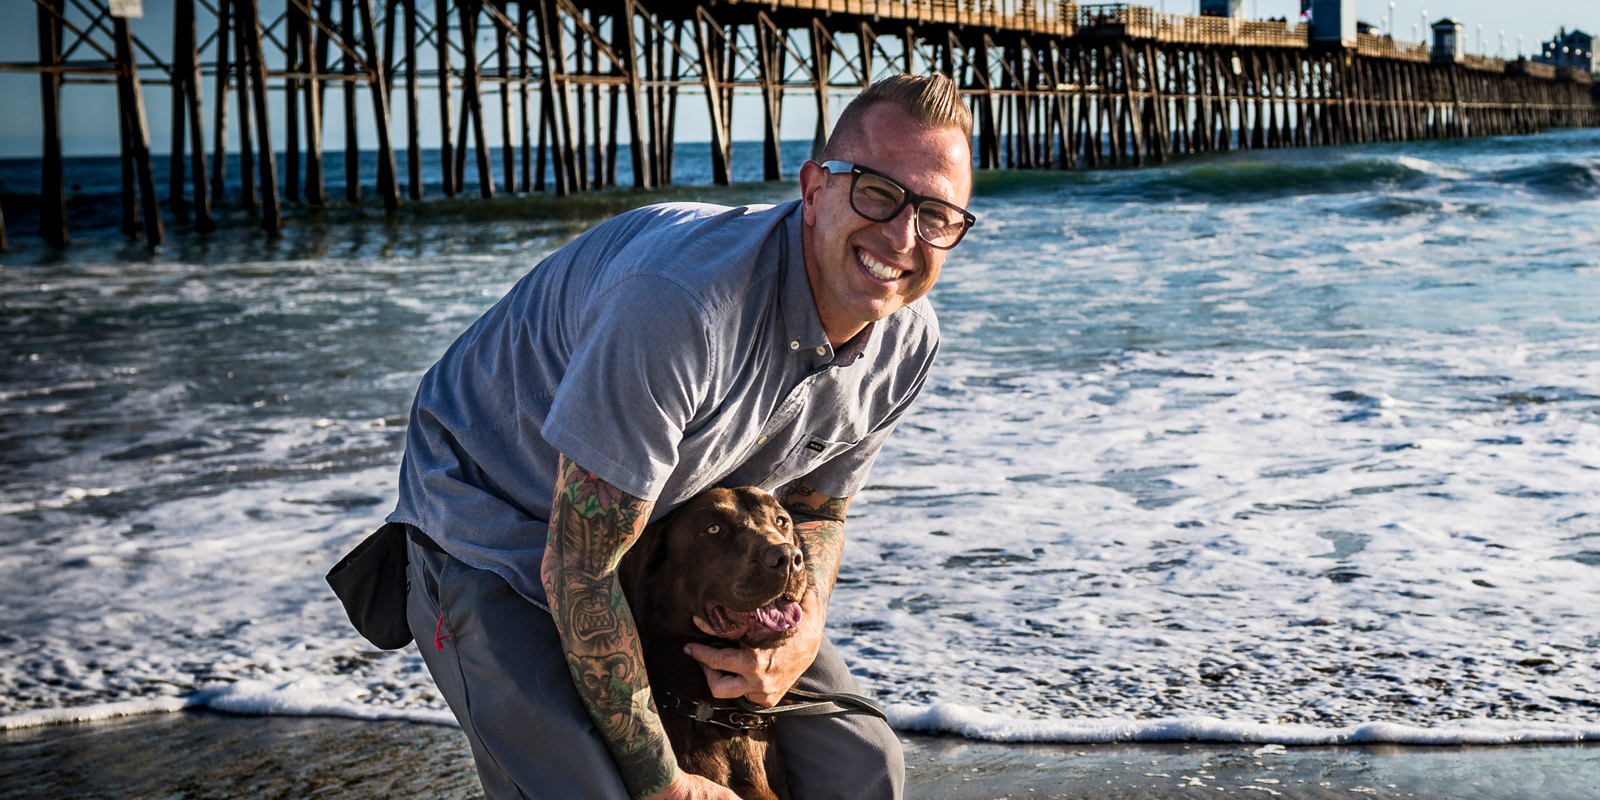 Vets like Vic Martin, USN, Retired — shown here with his service dog, Mia — see the benefits of nonprofit Shelter to Soldier as a lifesaver.